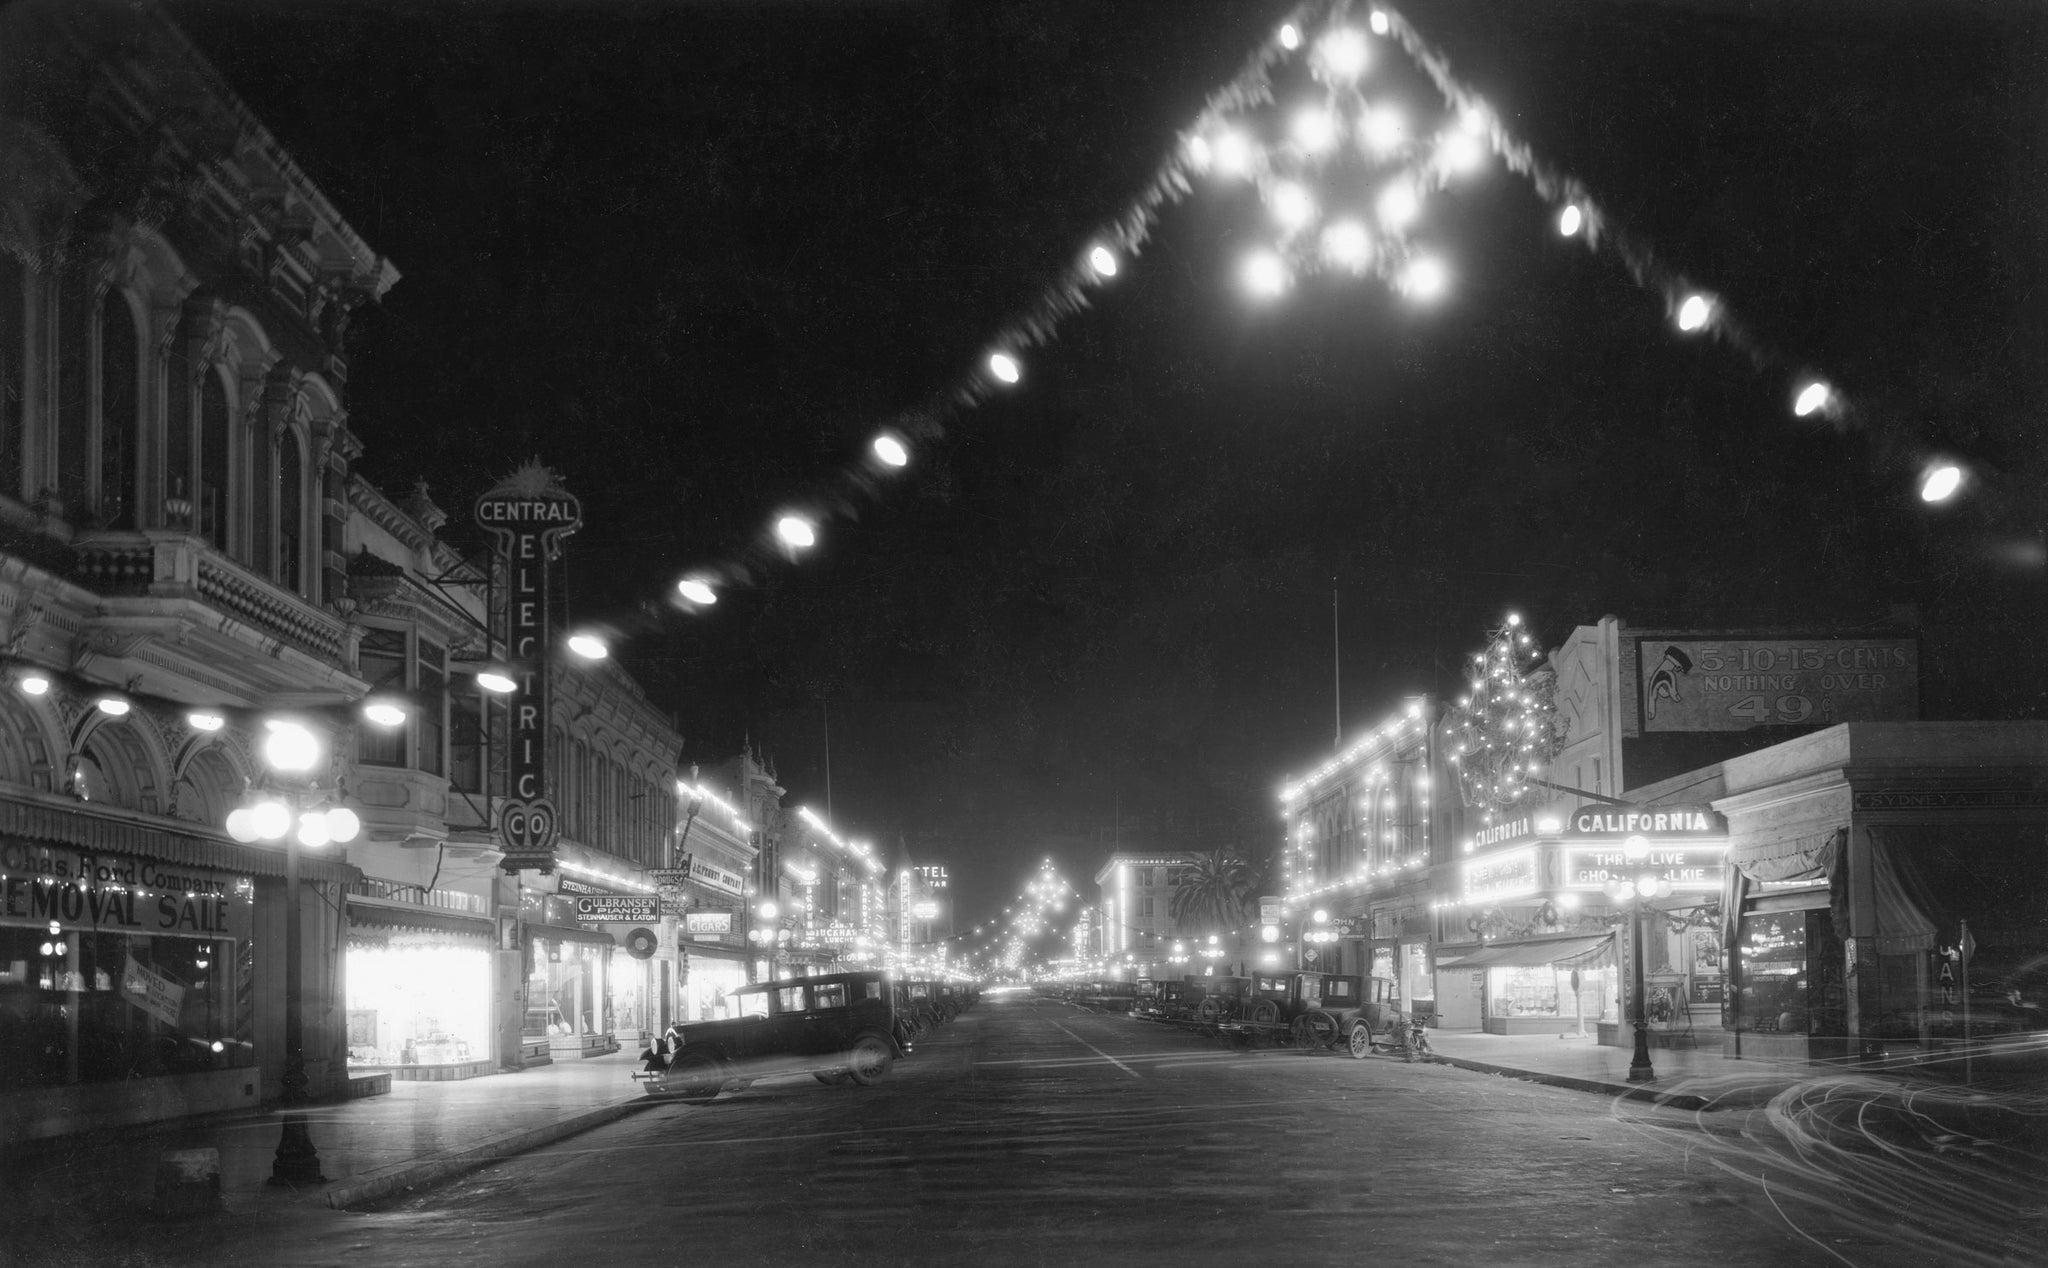 Holiday lighting along Main Street, Watsonville, 1920s. The Central Electric Company is on the left. -- CENTRAL ELECTRIC COMPANY